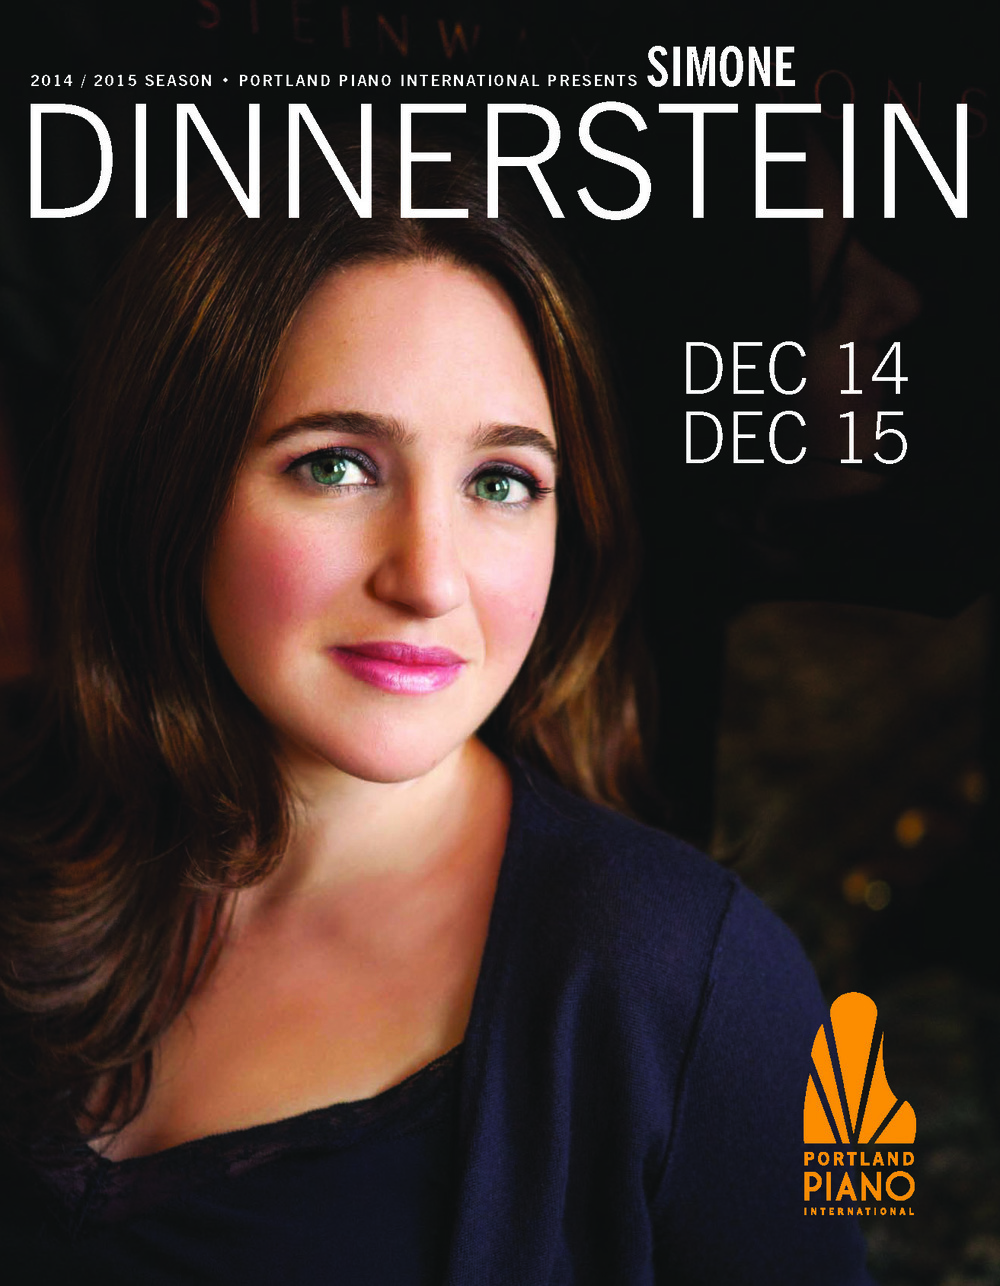 PPI_Program_Dinnerstein_smaller_Page_01.jpg